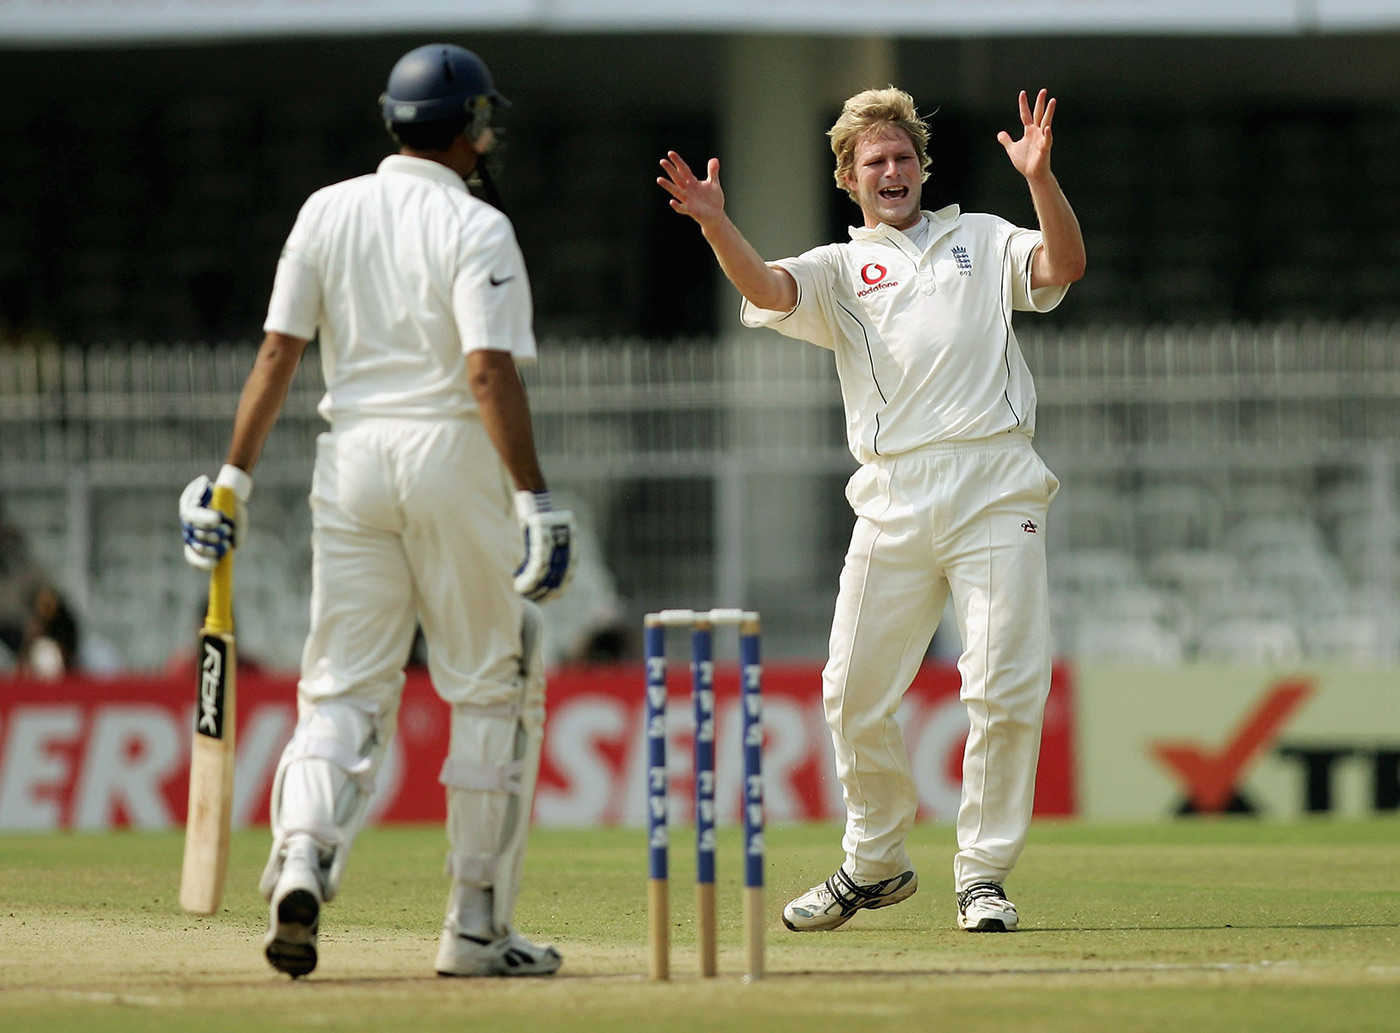 Hoggard gets Laxman at last, in the last Test the two featured in together, Nagpur in 2006